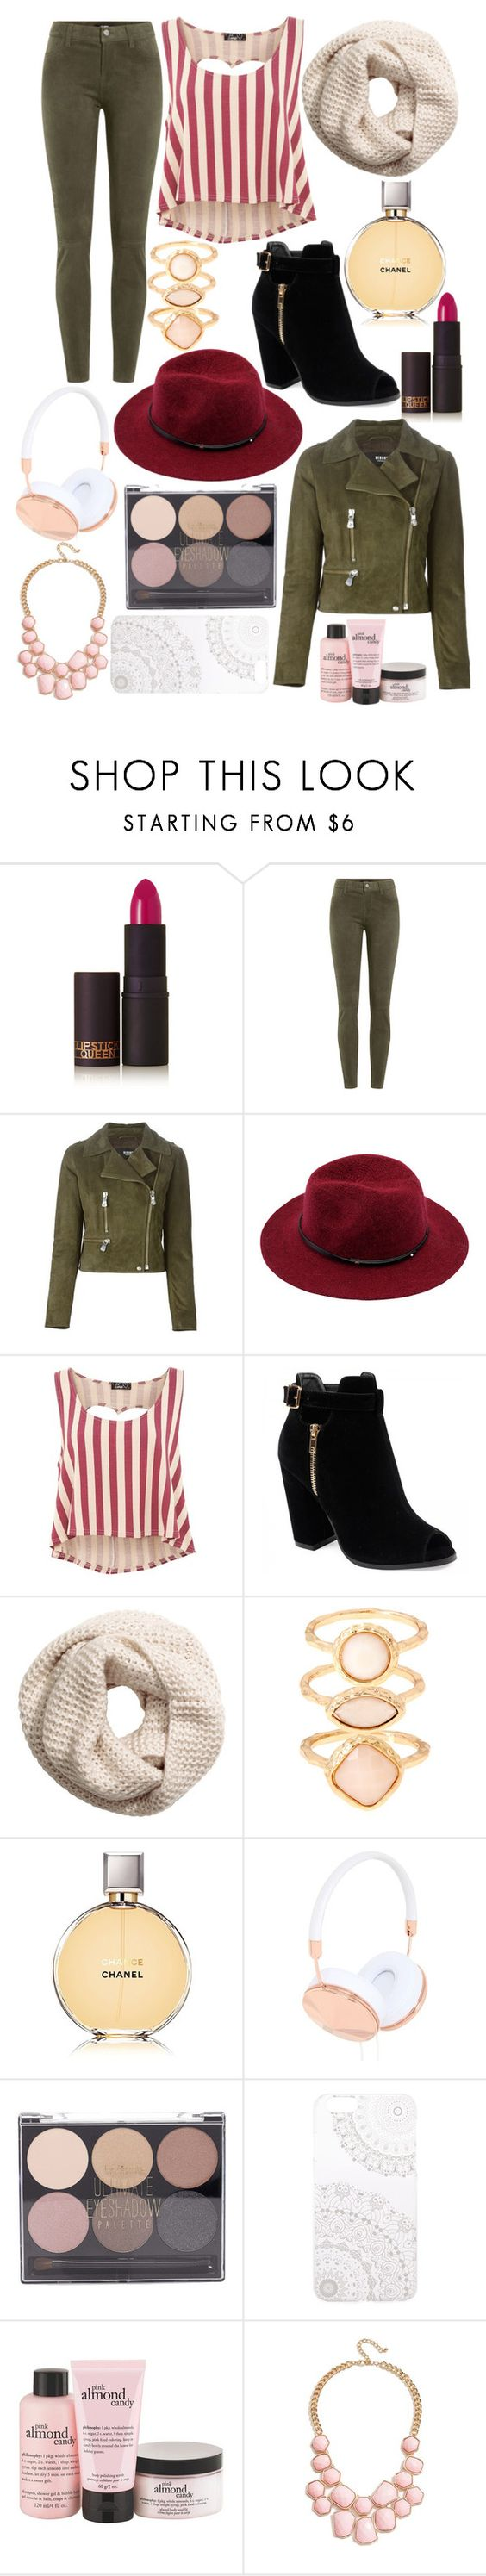 """red and kaki"" by enjoyrosa ❤ liked on Polyvore featuring Lipstick Queen, J Brand, Versus, Te Amo, H&M, Monsoon, Chanel, Frends, Forever 21 and Monika Strigel"